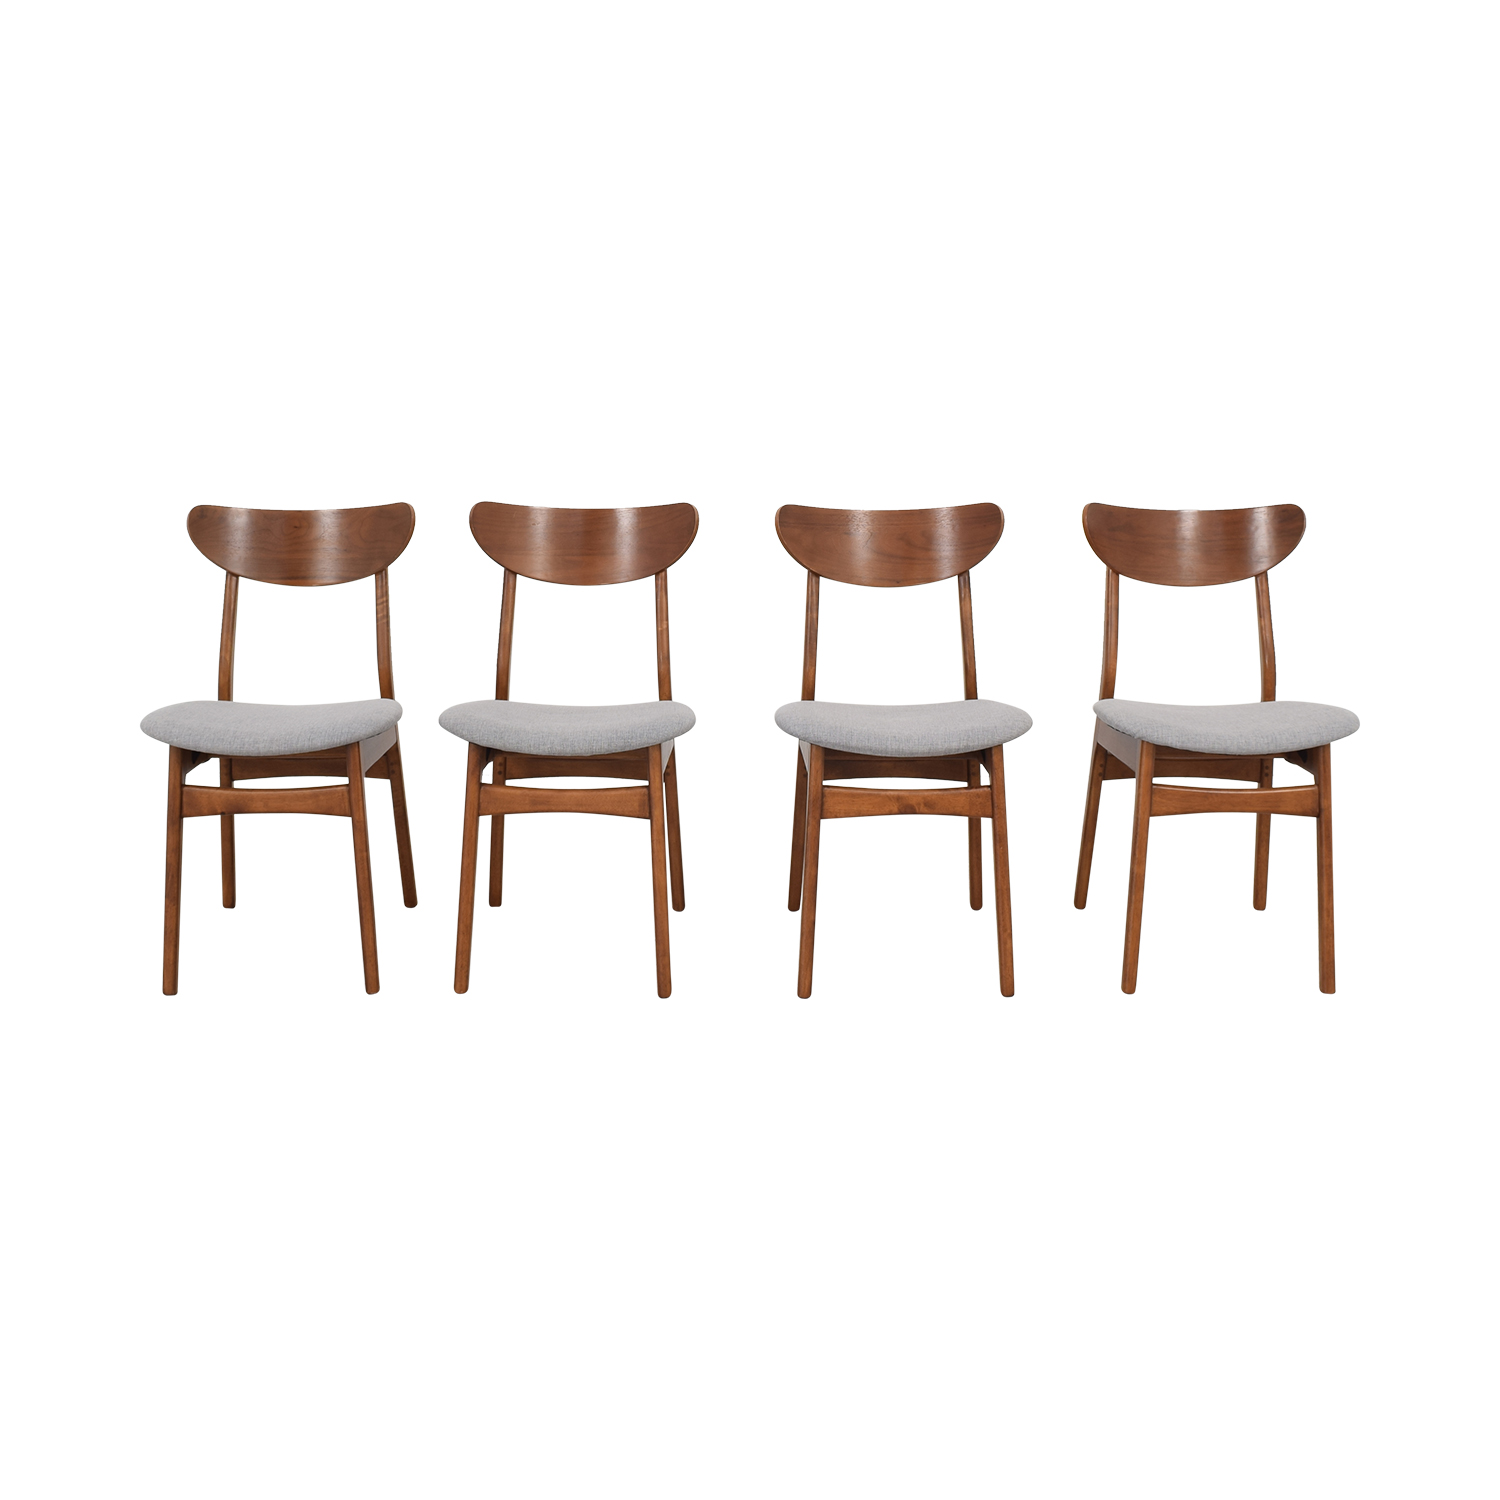 West Elm West Elm Classic Café Upholstered Dining Chairs coupon